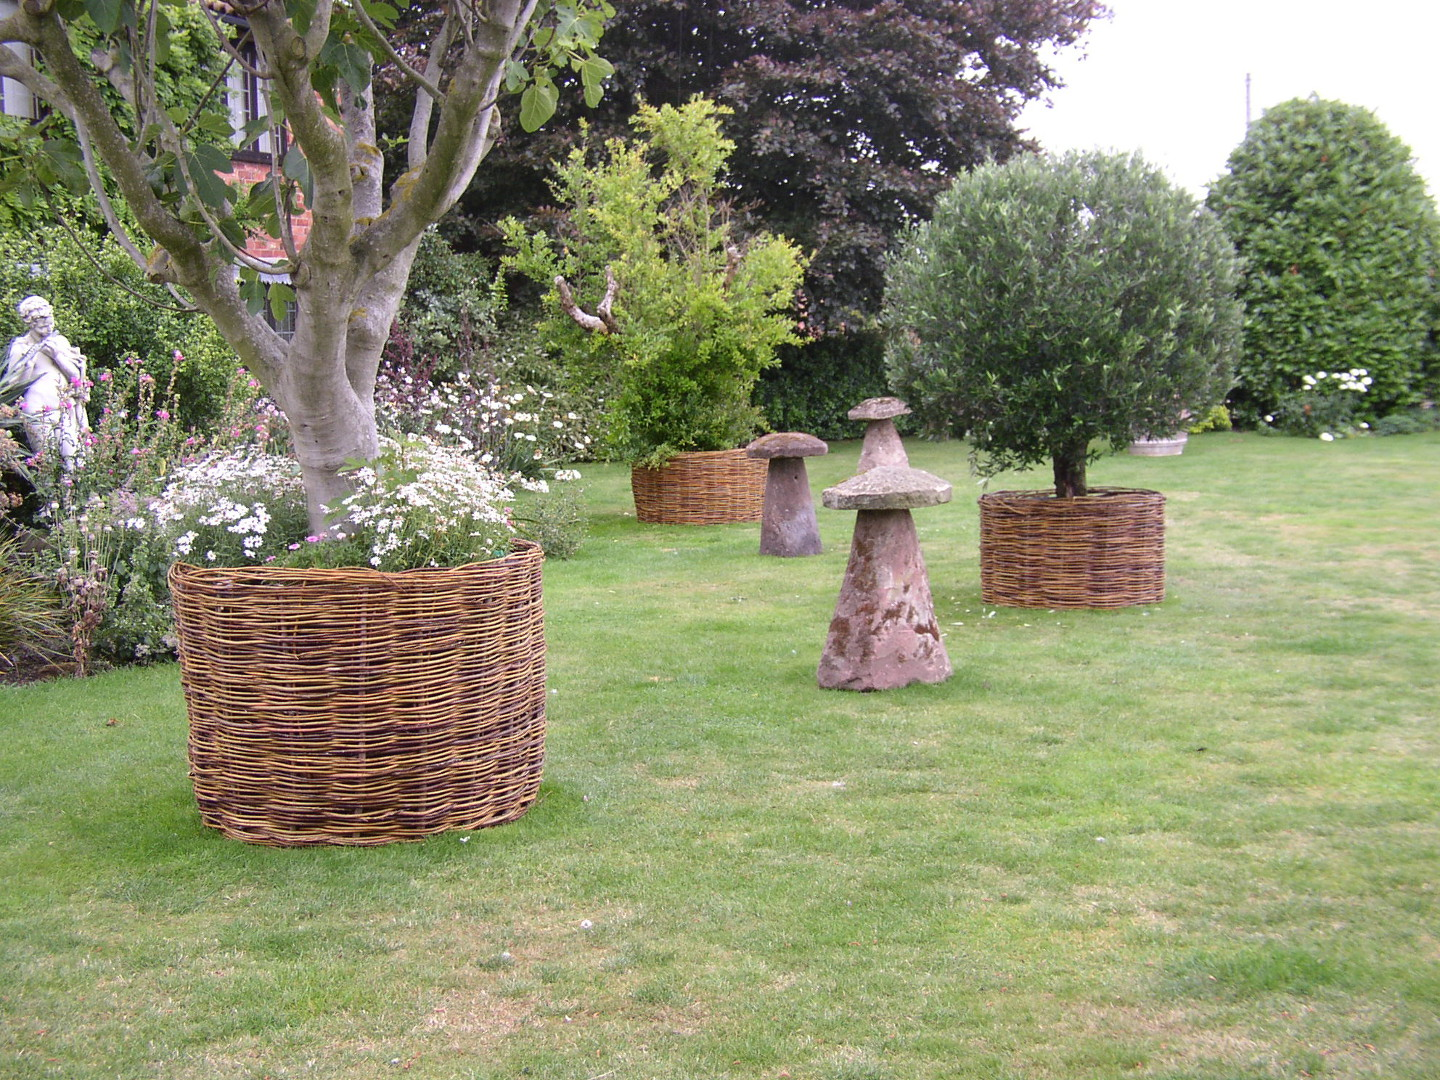 Willow Tree guards